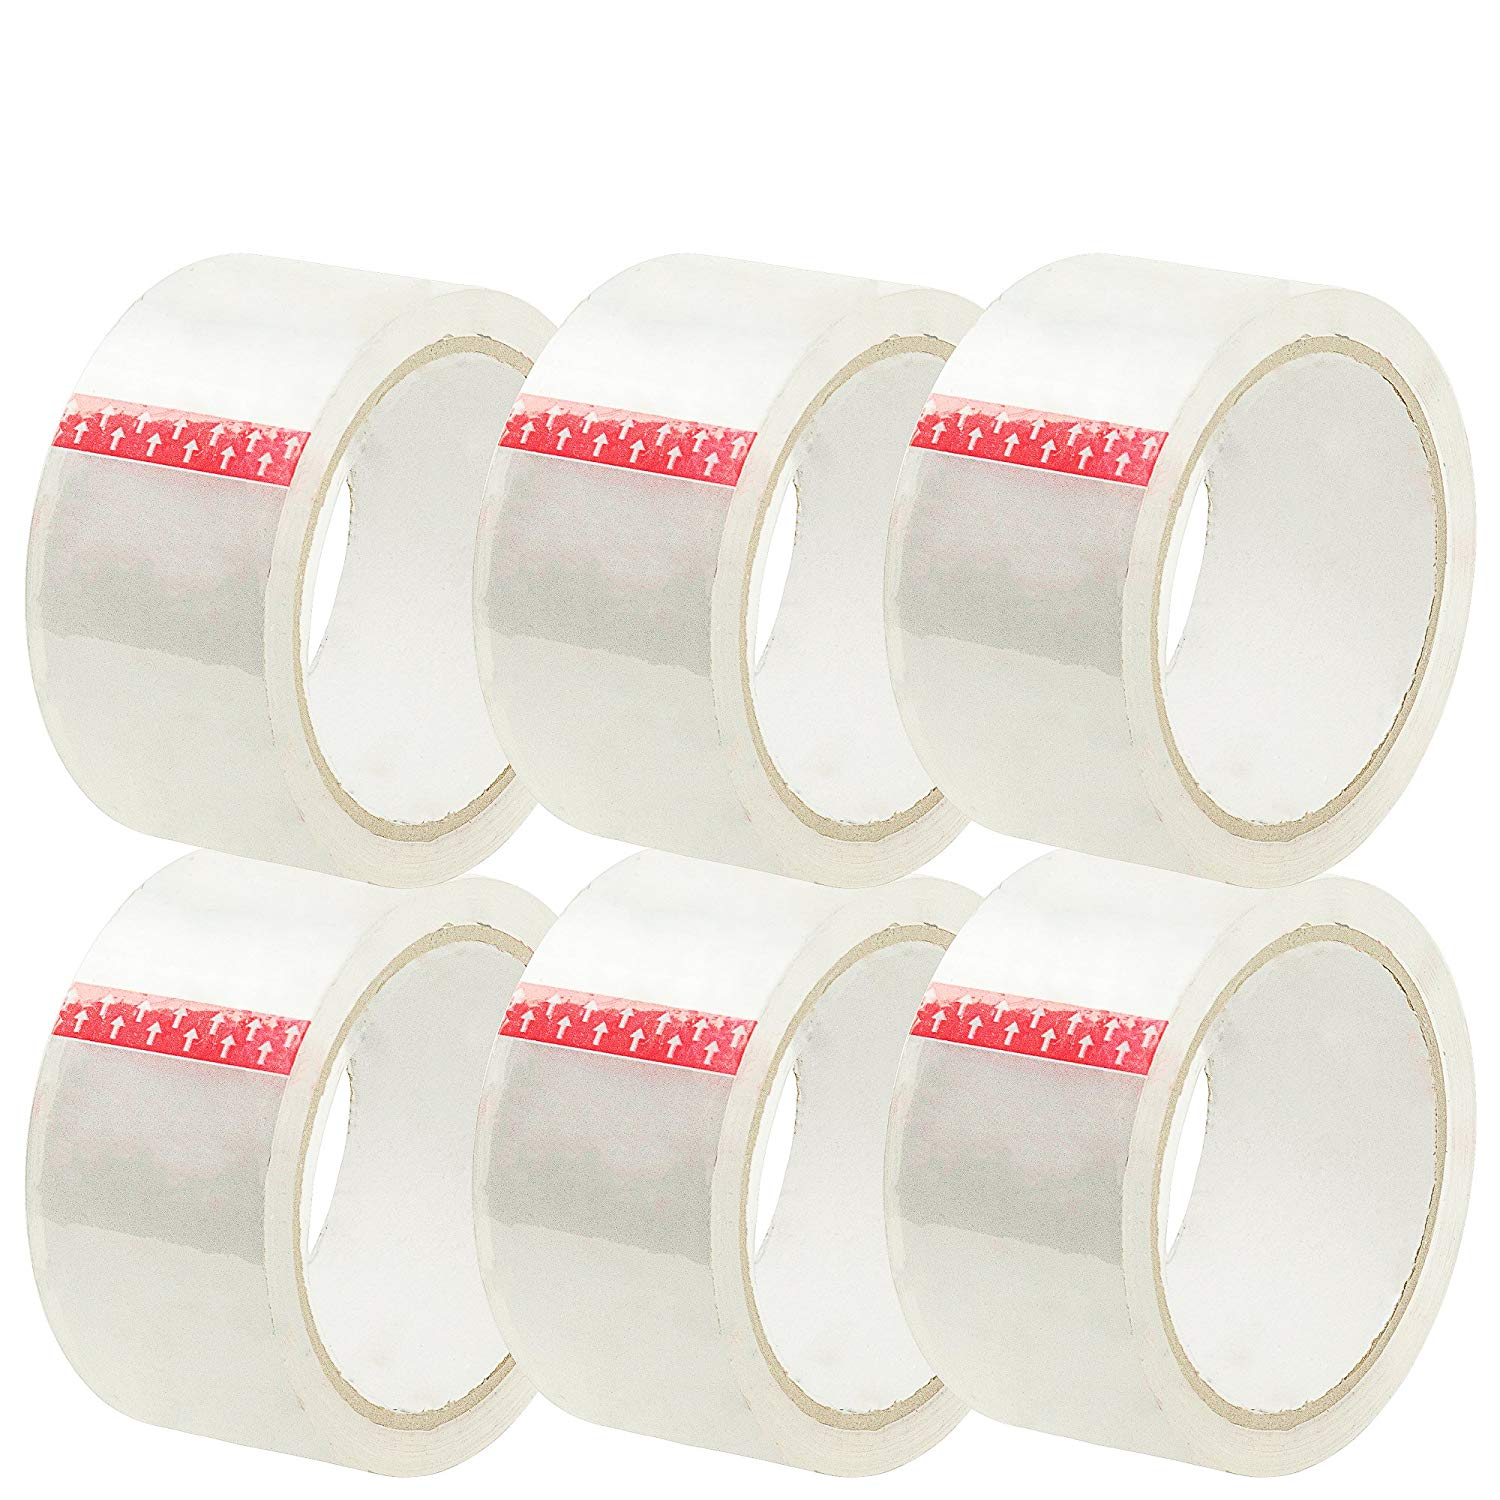 SteadMax 6 Pack Crystal Clear Packing Tape, 6 Rolls X 50 Yard, 2 inch Heavy Duty Packaging Tape, Sealing Adhesive Tape Dispenser Gun Refill Rolls for Shipping and Moving Boxes (Total of 300 Yards)